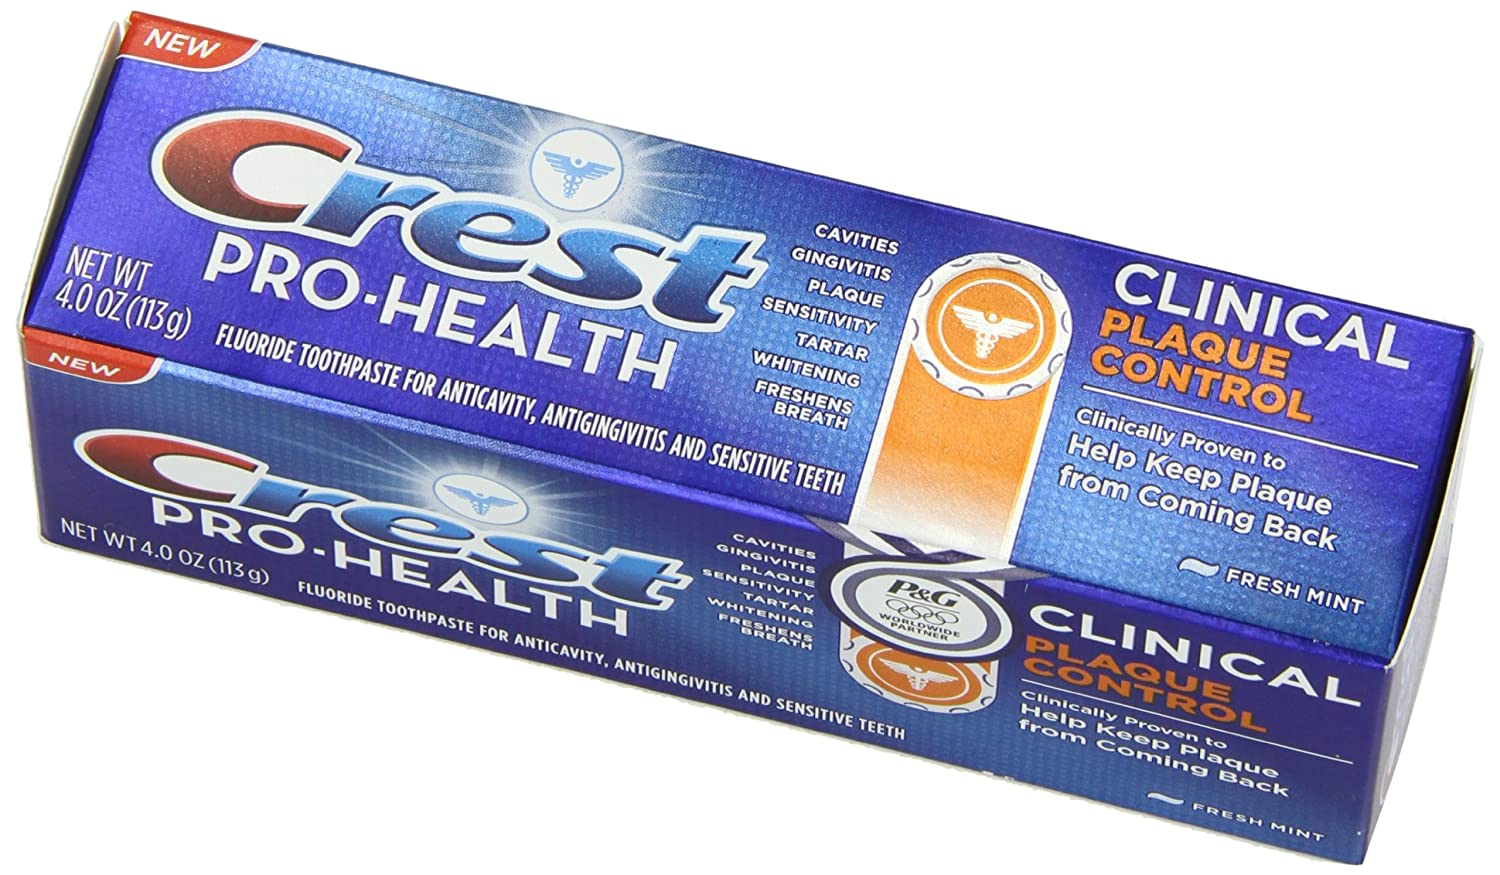 Crest Pro-Health Clinical Plaque Control Fresh Mint Toothpaste, 4 Ounce $2.77